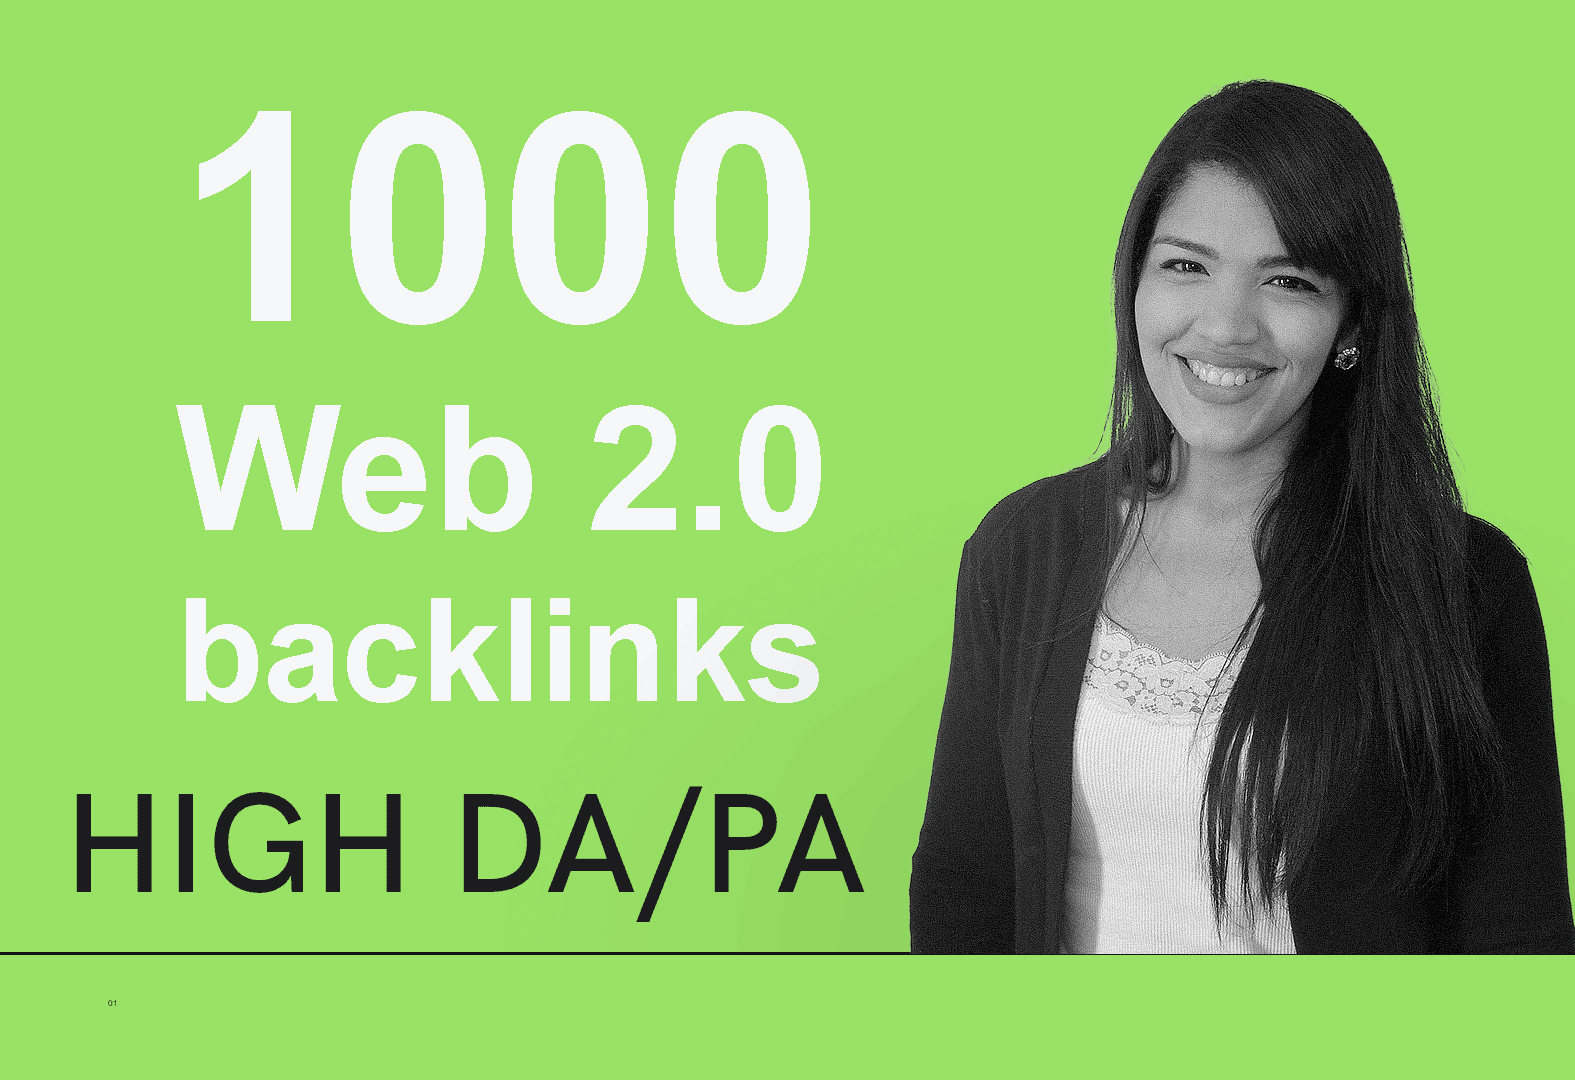 build 1000 authority web 2.0 backlinks from high DA PA